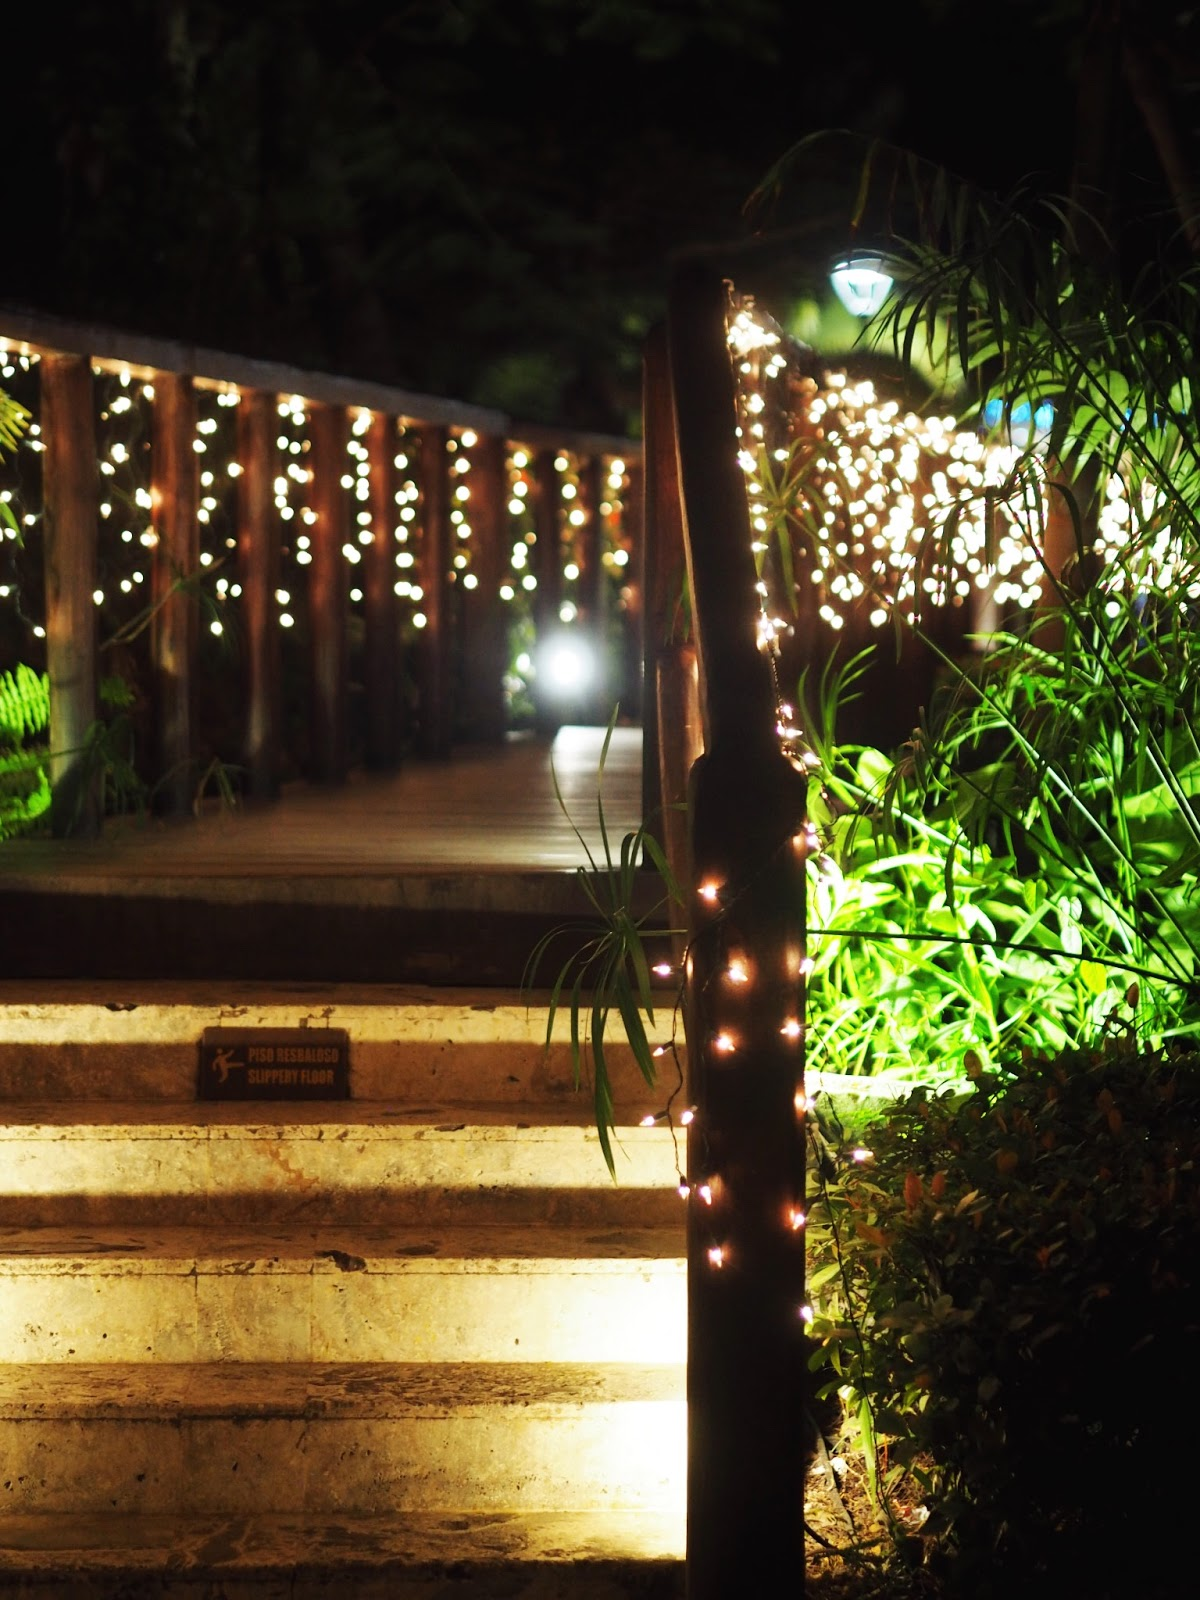 Fairy Light Covered Bridge with Palm trees and bushes over Pond